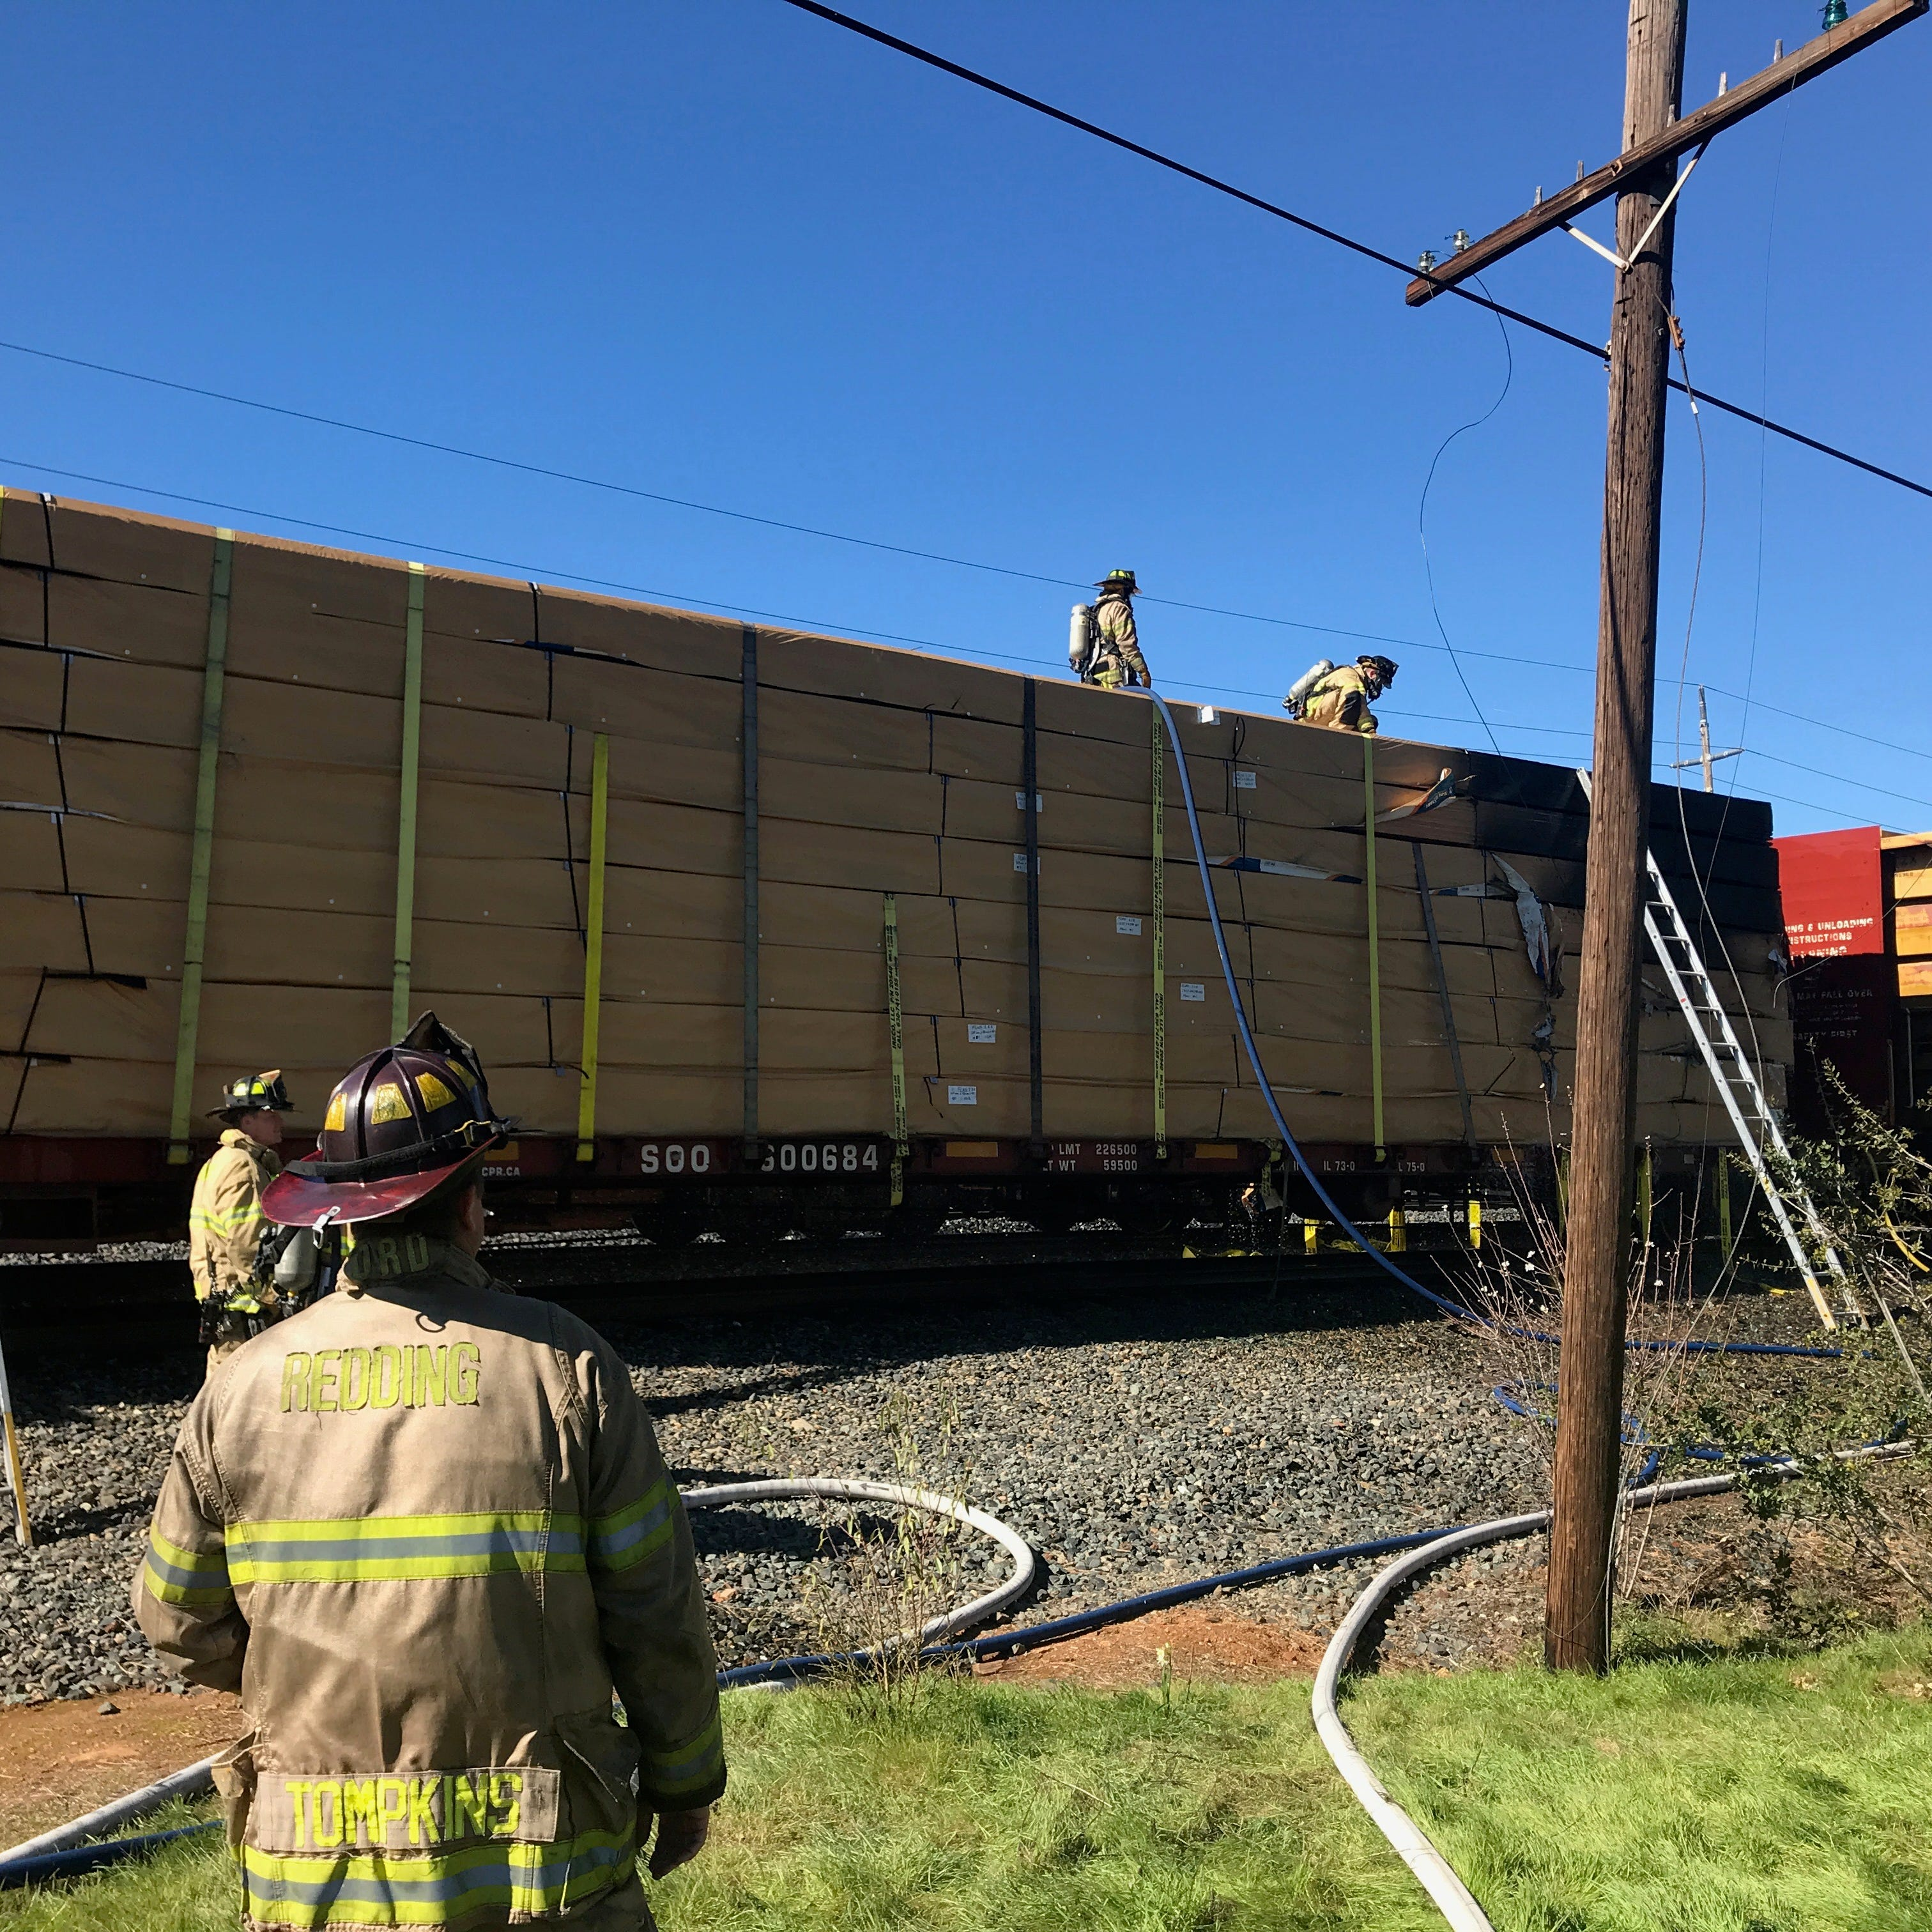 UPDATE: Flatcar filled with wood laminate catches fire in south Redding